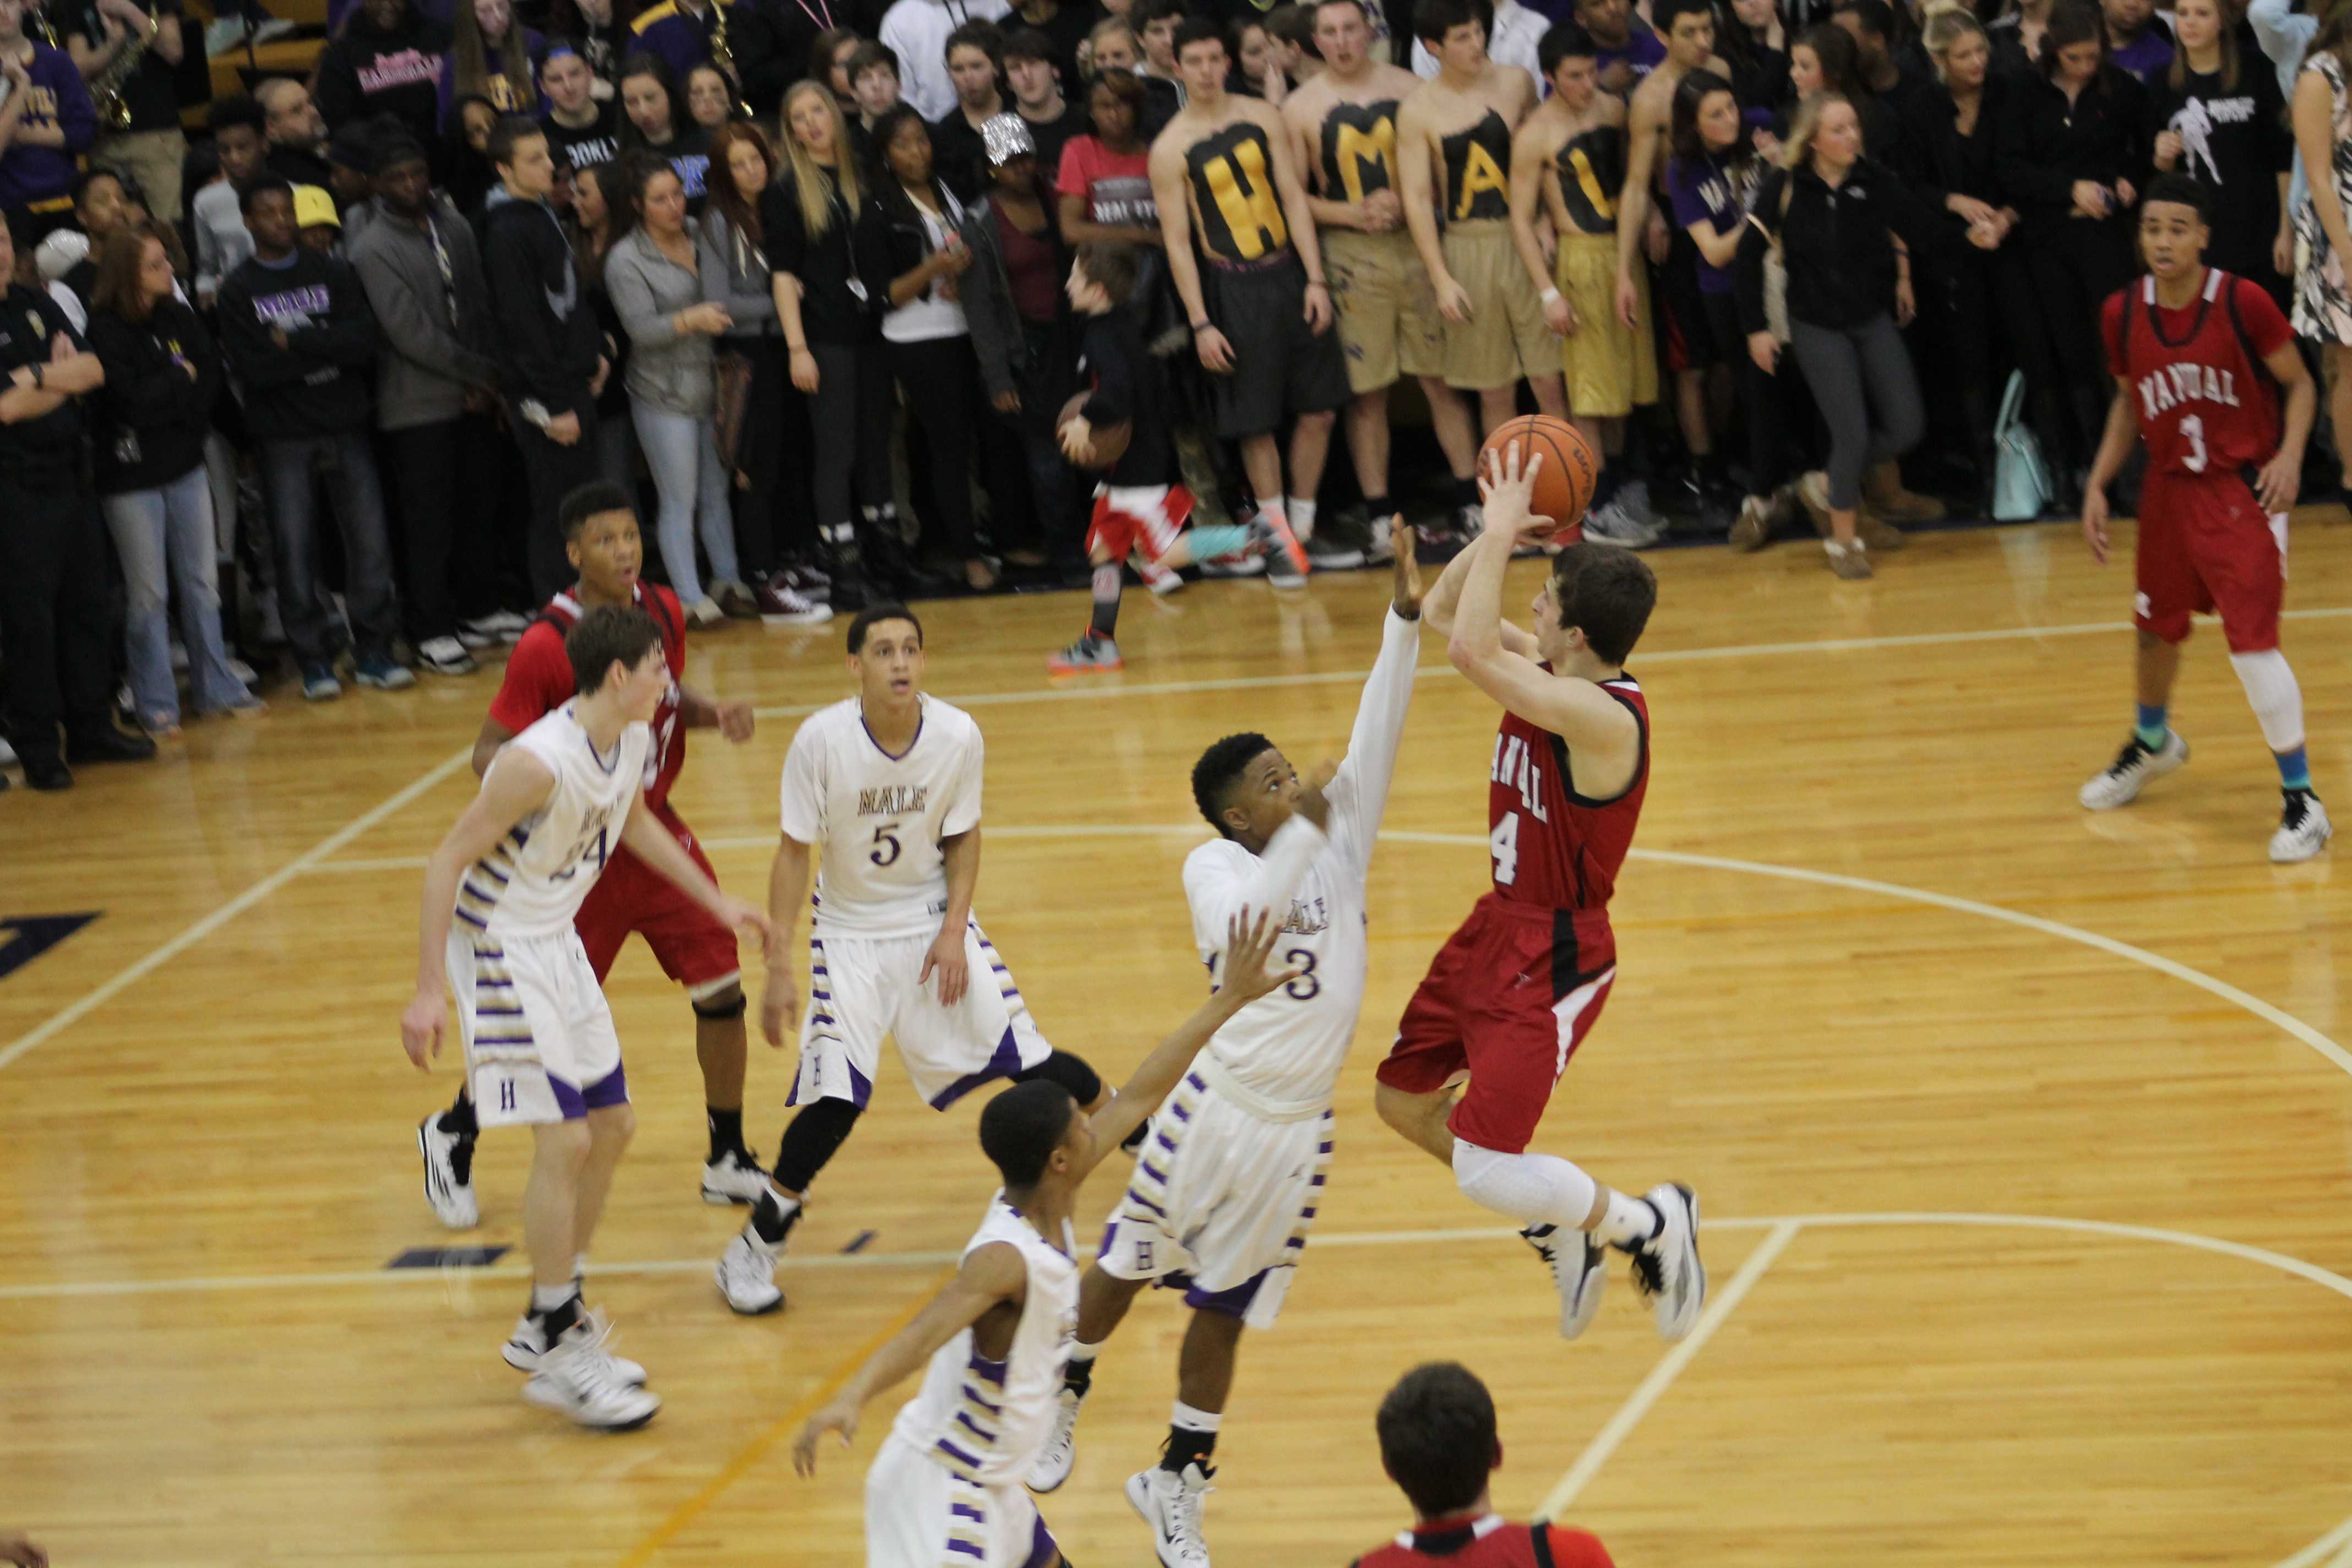 Jarrett Harness (12, #4) goes up for a shot. Harness is one of the team's leading scorers, but had a fairly quiet game.